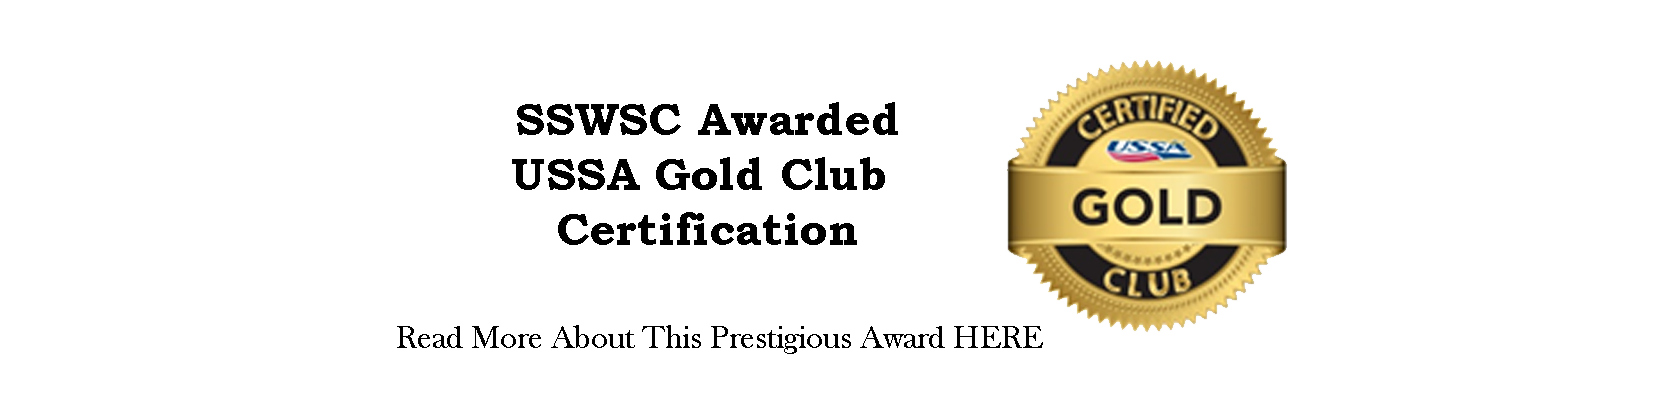 Gold Club Certification